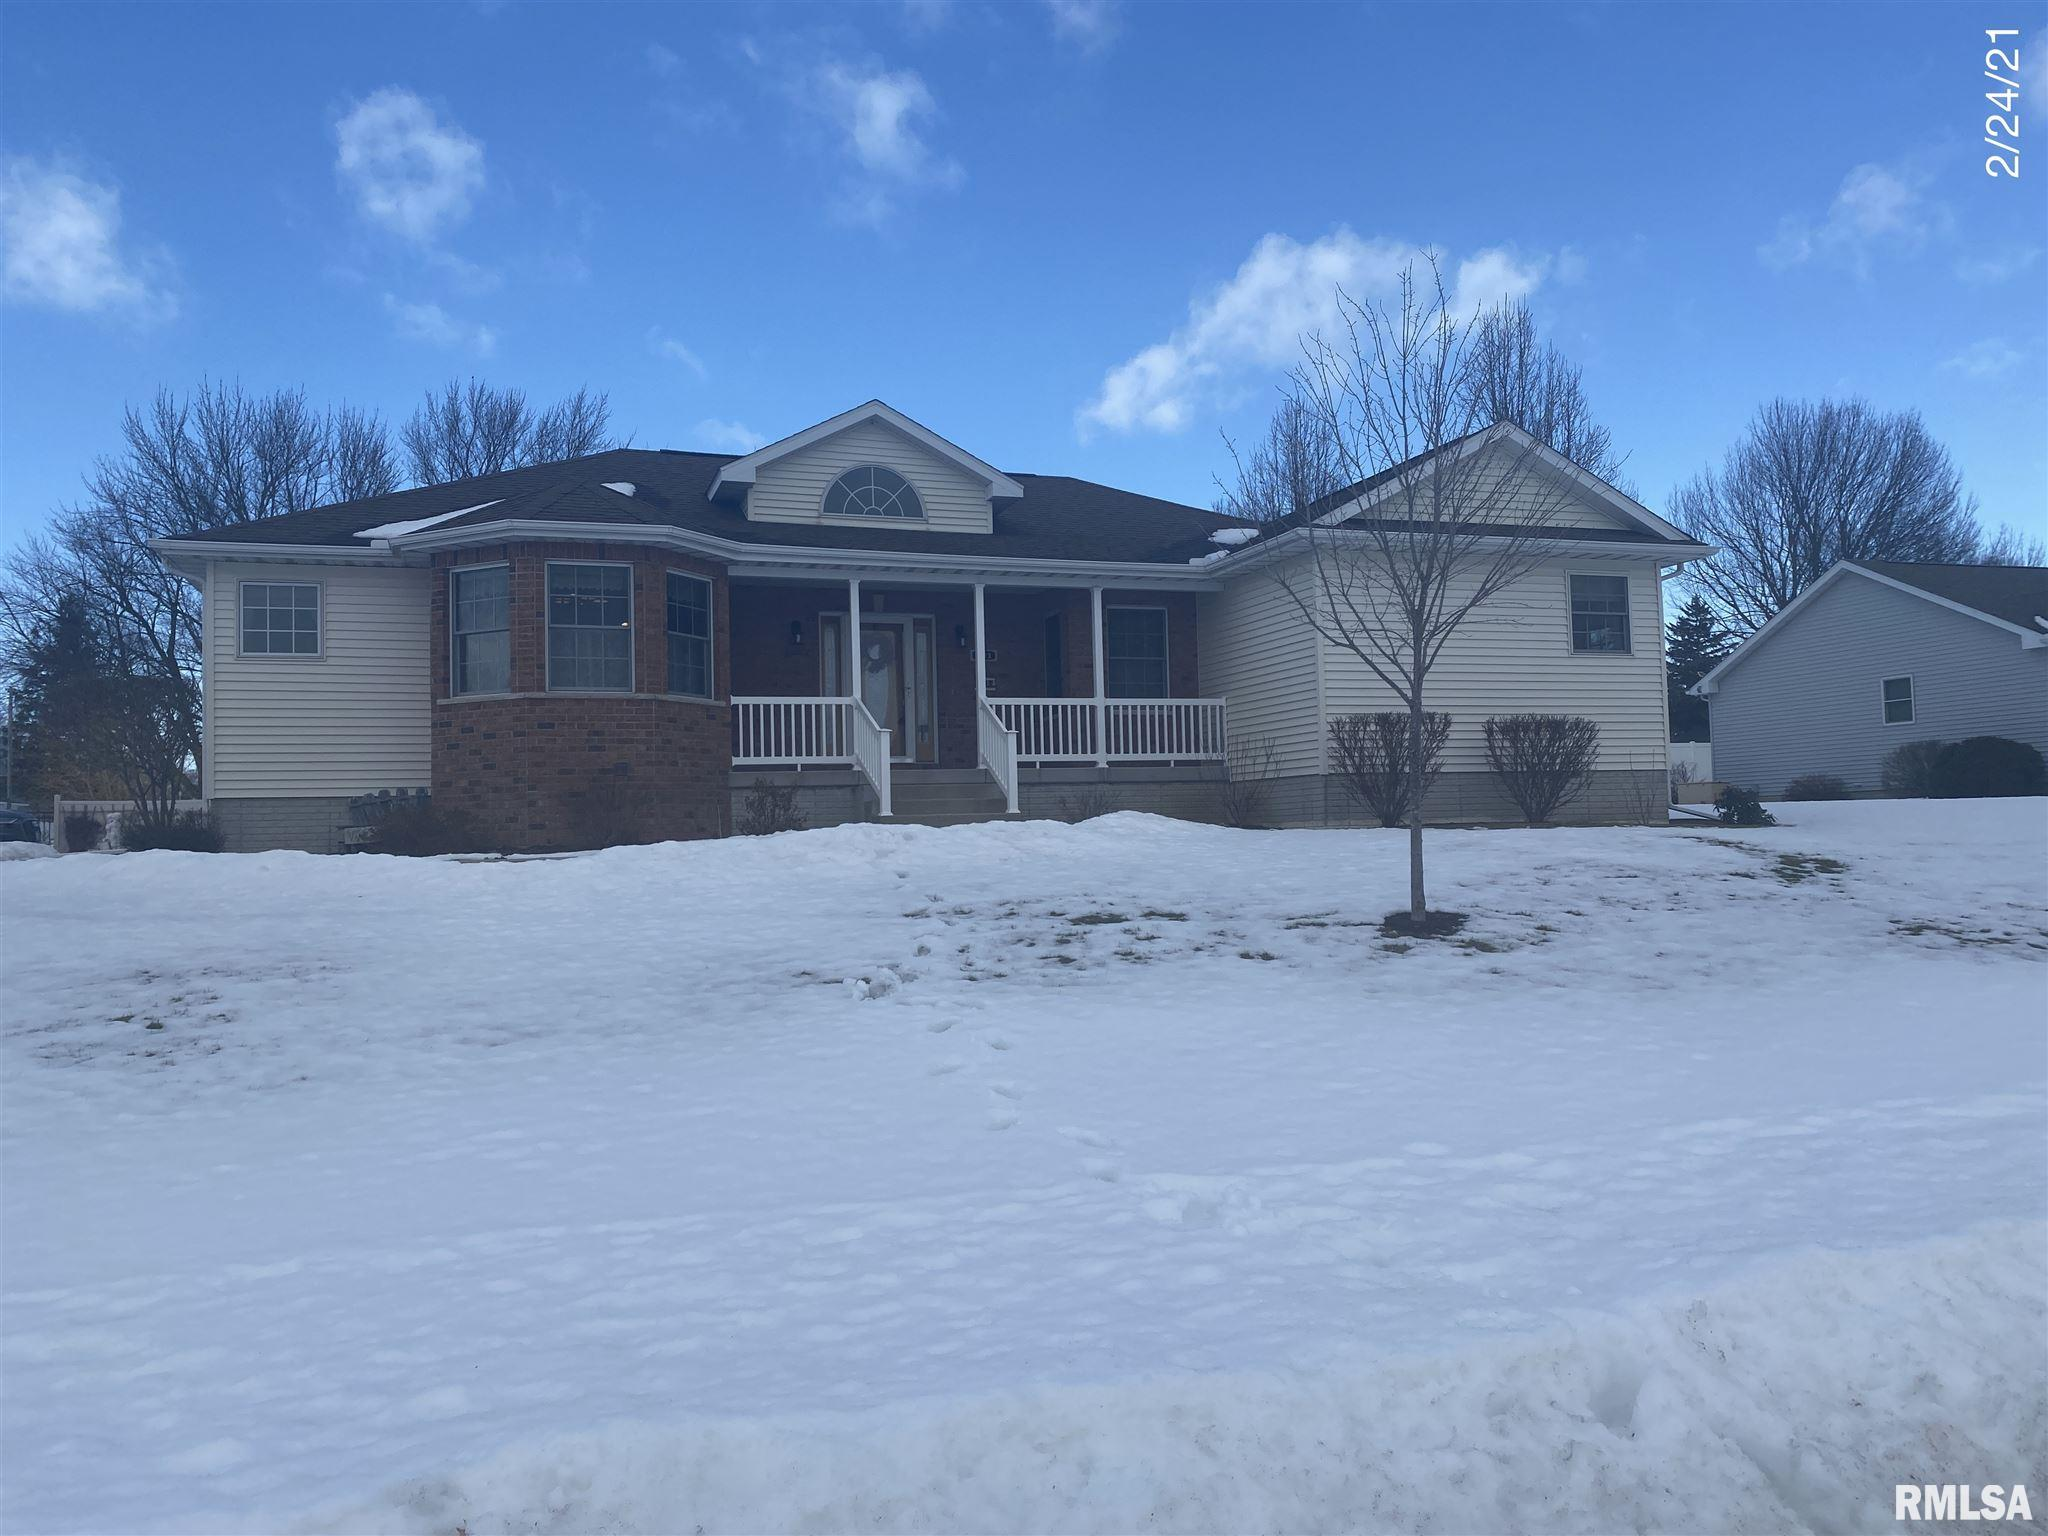 201 MAPLE Property Photo - Cambridge, IL real estate listing